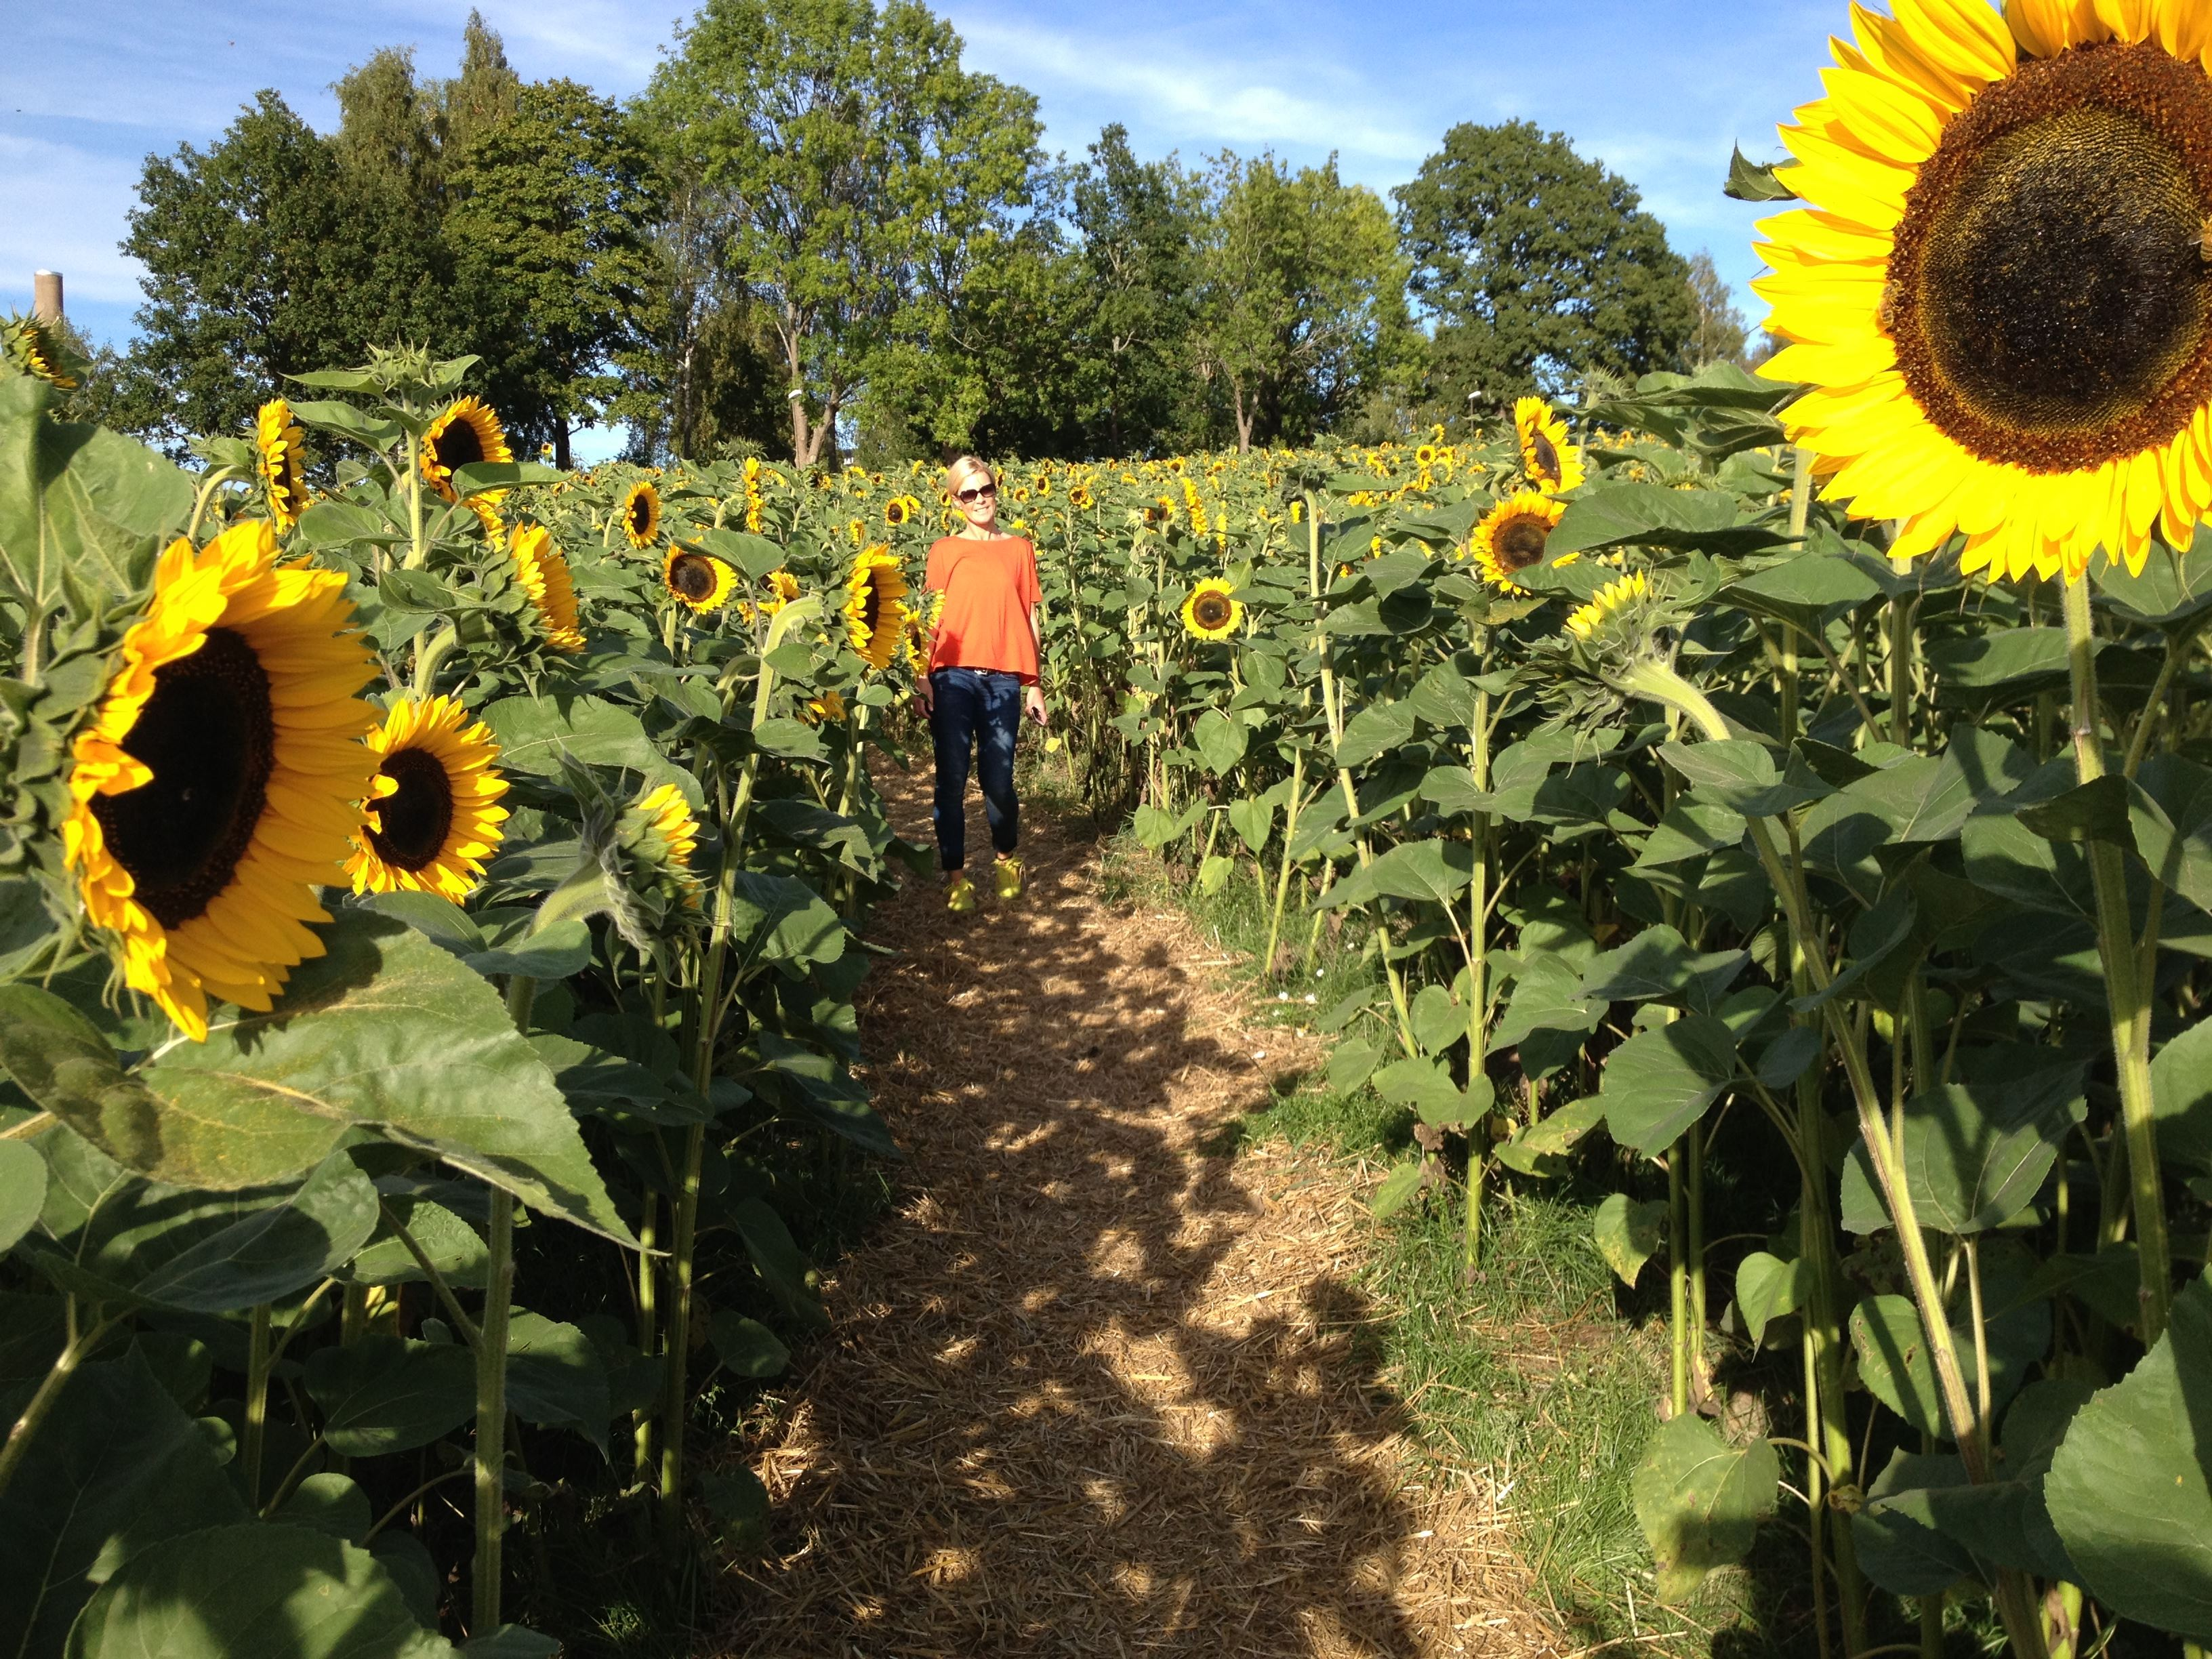 The sunflower field in Växjö